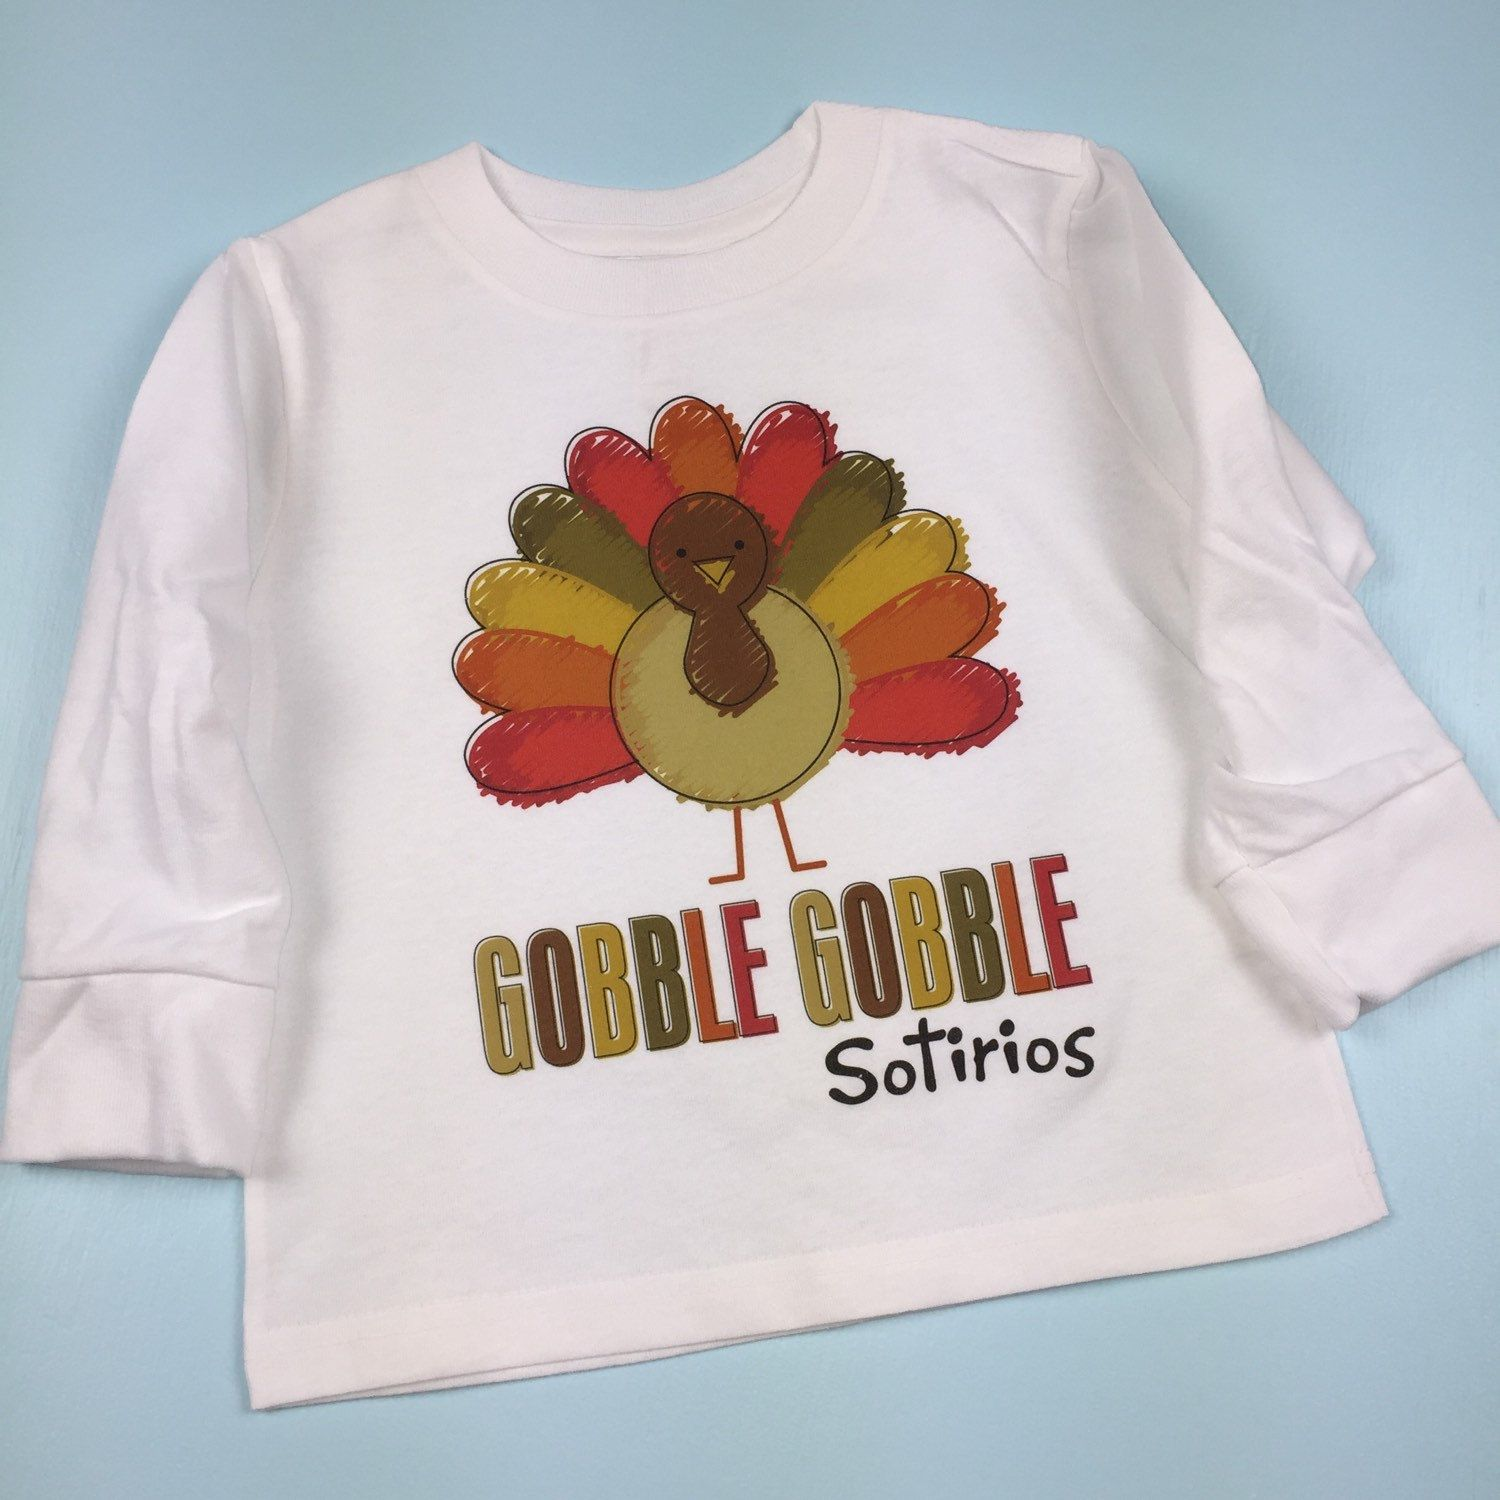 Cute personalized Thanksgiving outfit t-shirt.